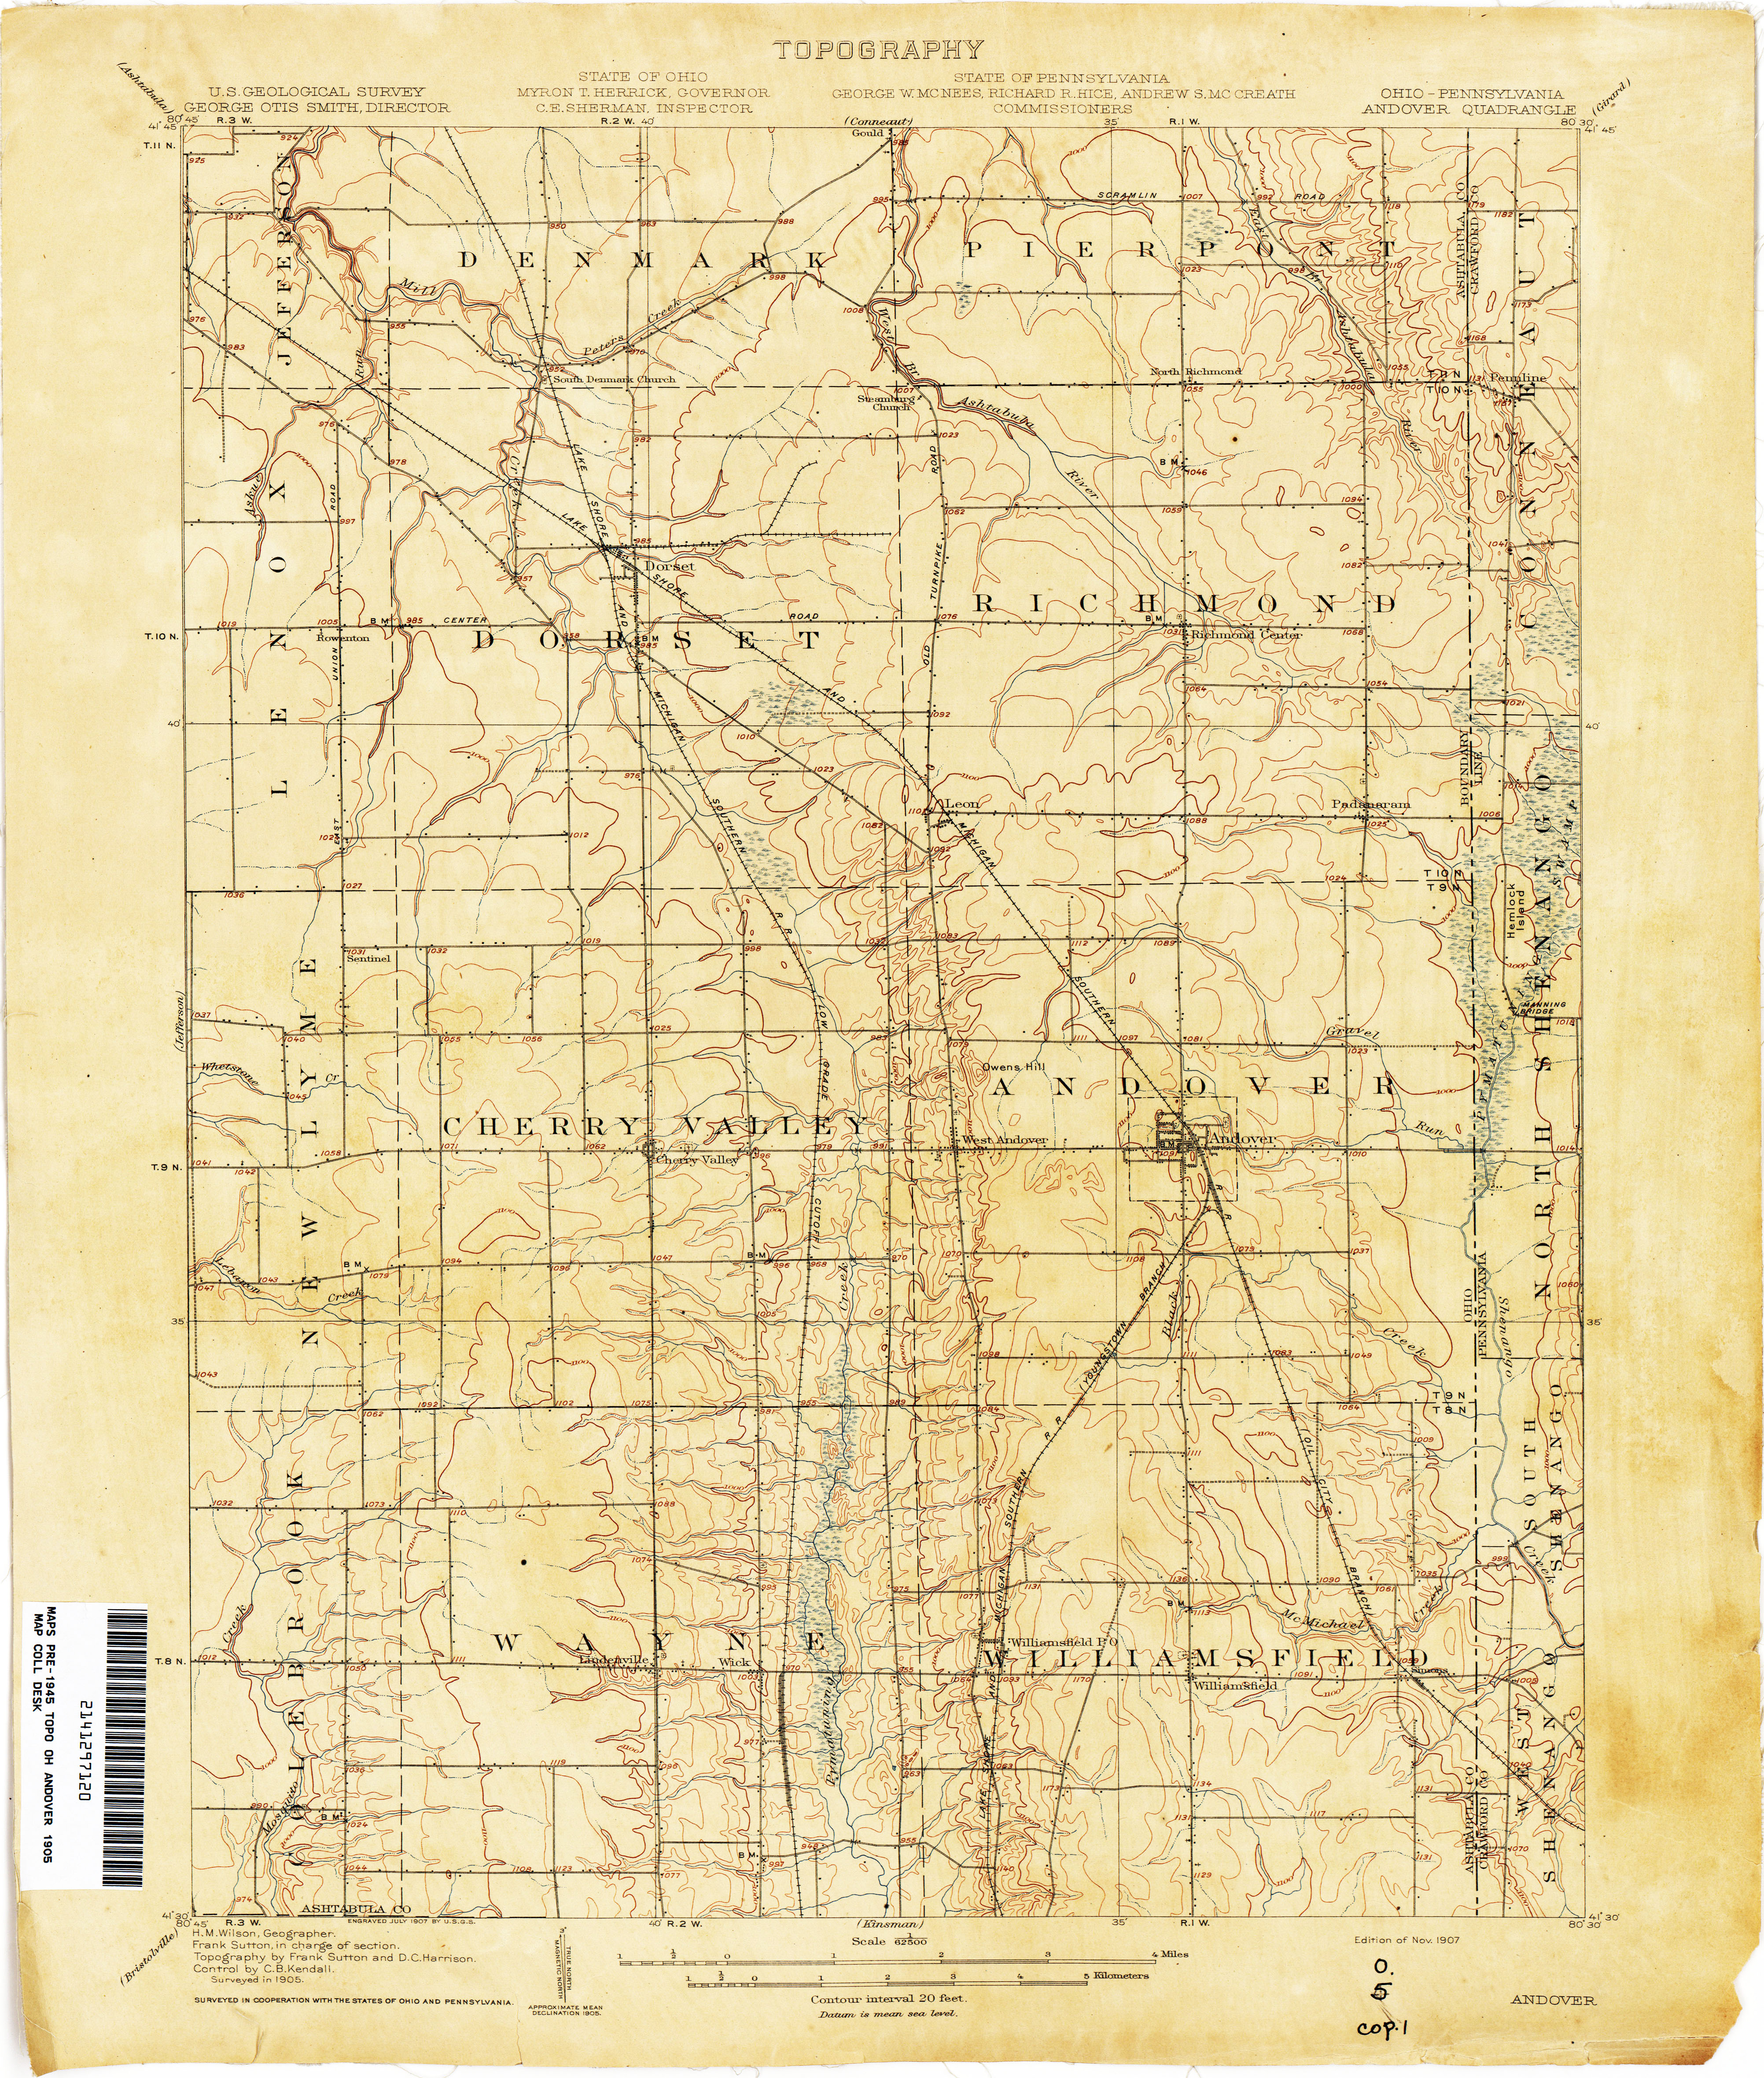 Ohio Historical Topographic Maps - Perry-Castañeda Map ... on map of route 322 pennsylvania, map of pennsylvania with cities, map of southern pennsylvania, map of route 30 pennsylvania, map of route 78 pennsylvania, map of route 80 pennsylvania,